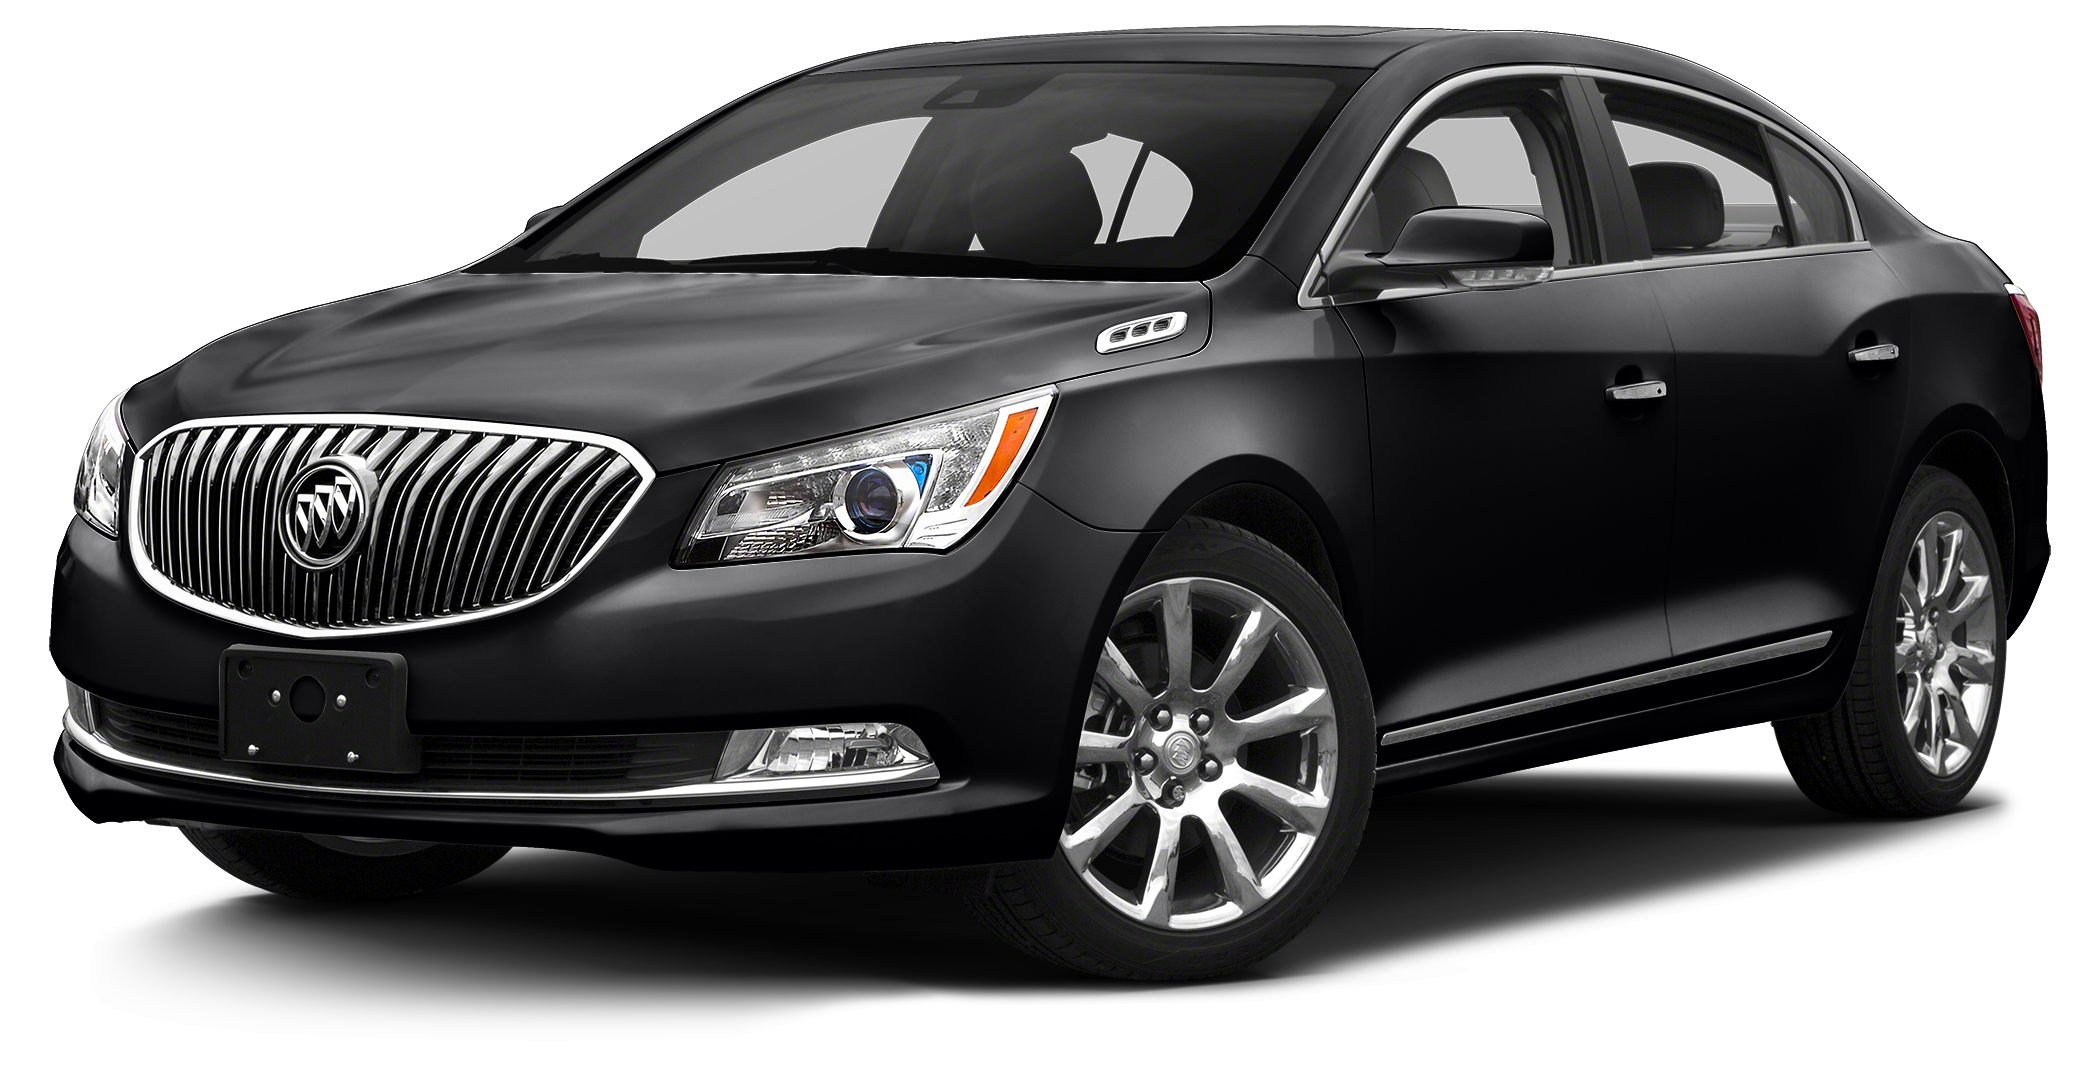 2016 Buick LaCrosse Sport Touring  2016 Buick LaCrosse Touring Features include 8 Diagonal To